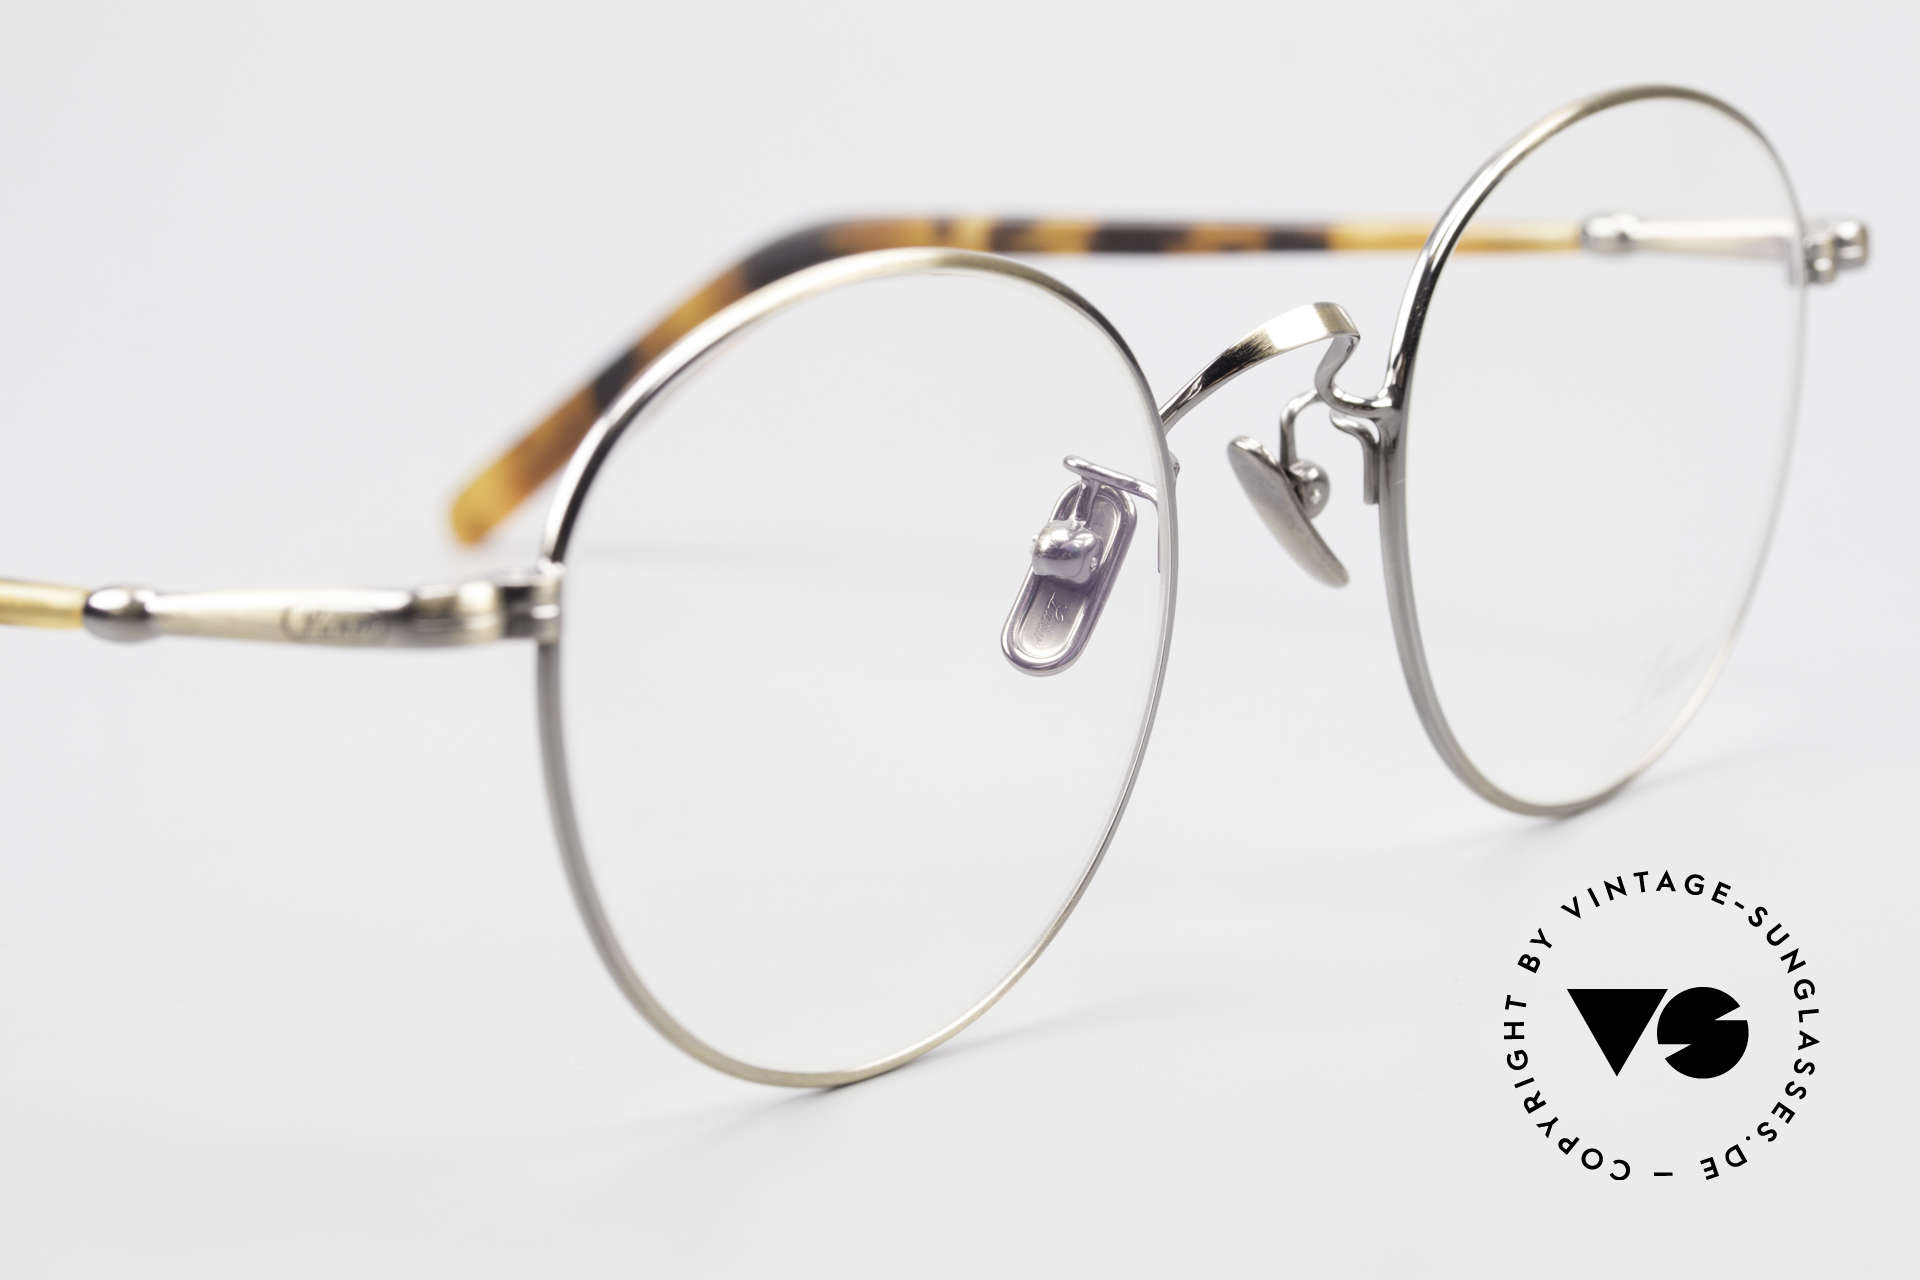 Lunor VA 111 Classy Men's Panto Eyeglasses, thus, we decided to take it into our vintage collection, Made for Men